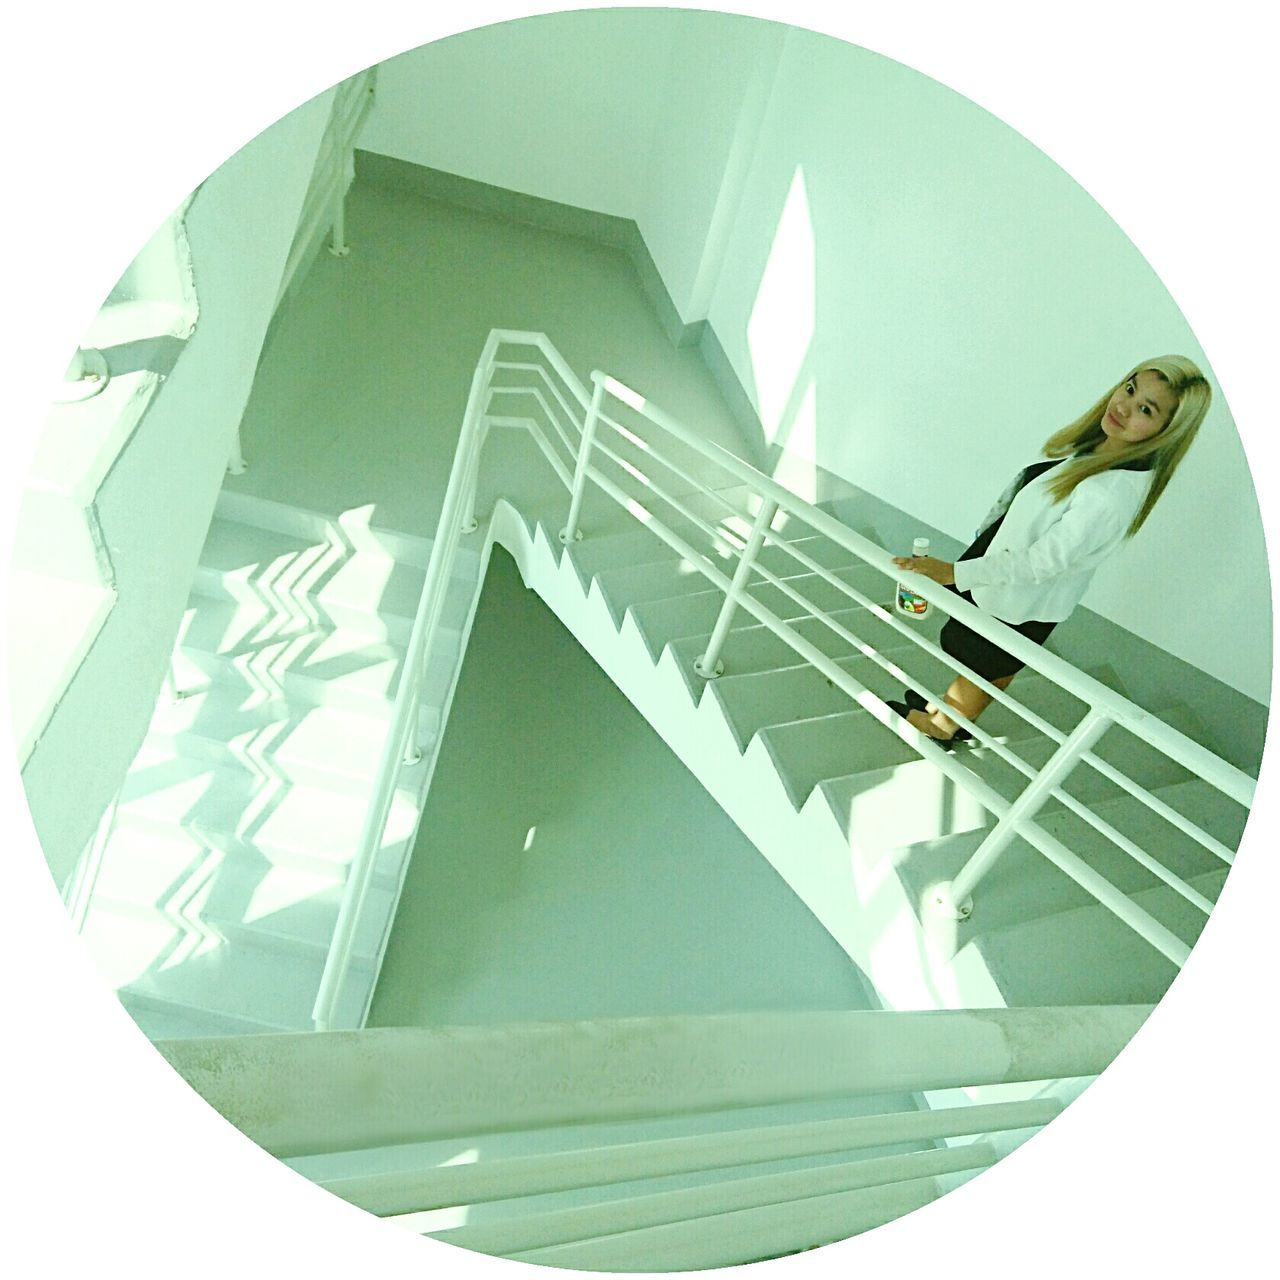 Overlay To Go Down Stairs White Interior Escape Contrast Light Shapes And Lines Light And Space